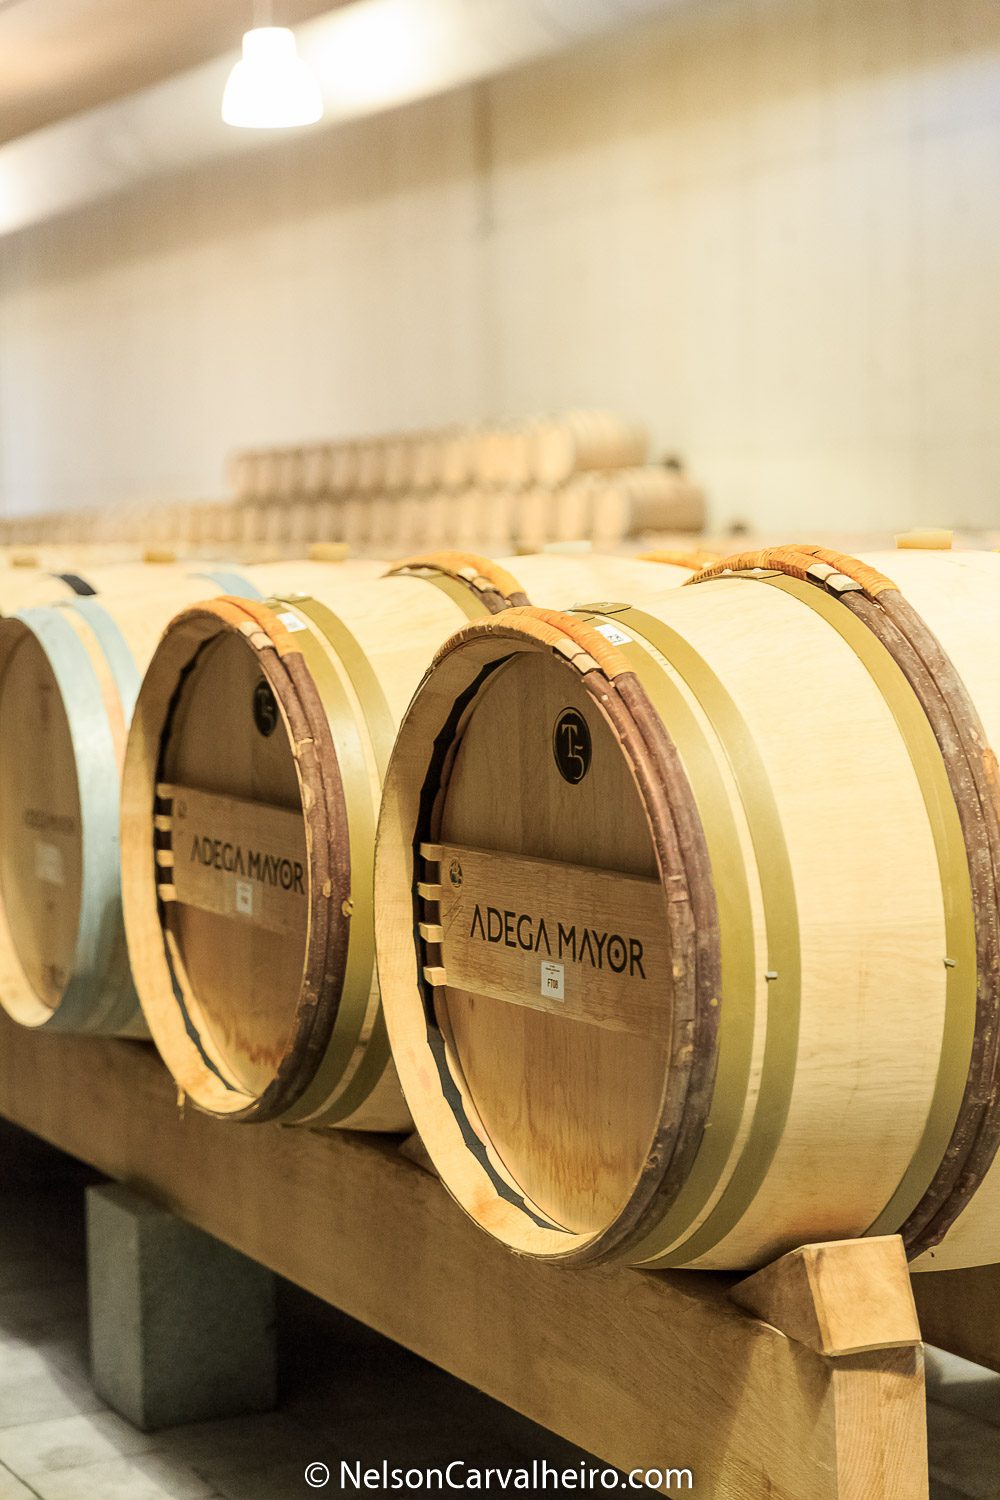 Alentejo Wine Travel Guide - Adega Mayor - Wine Casks